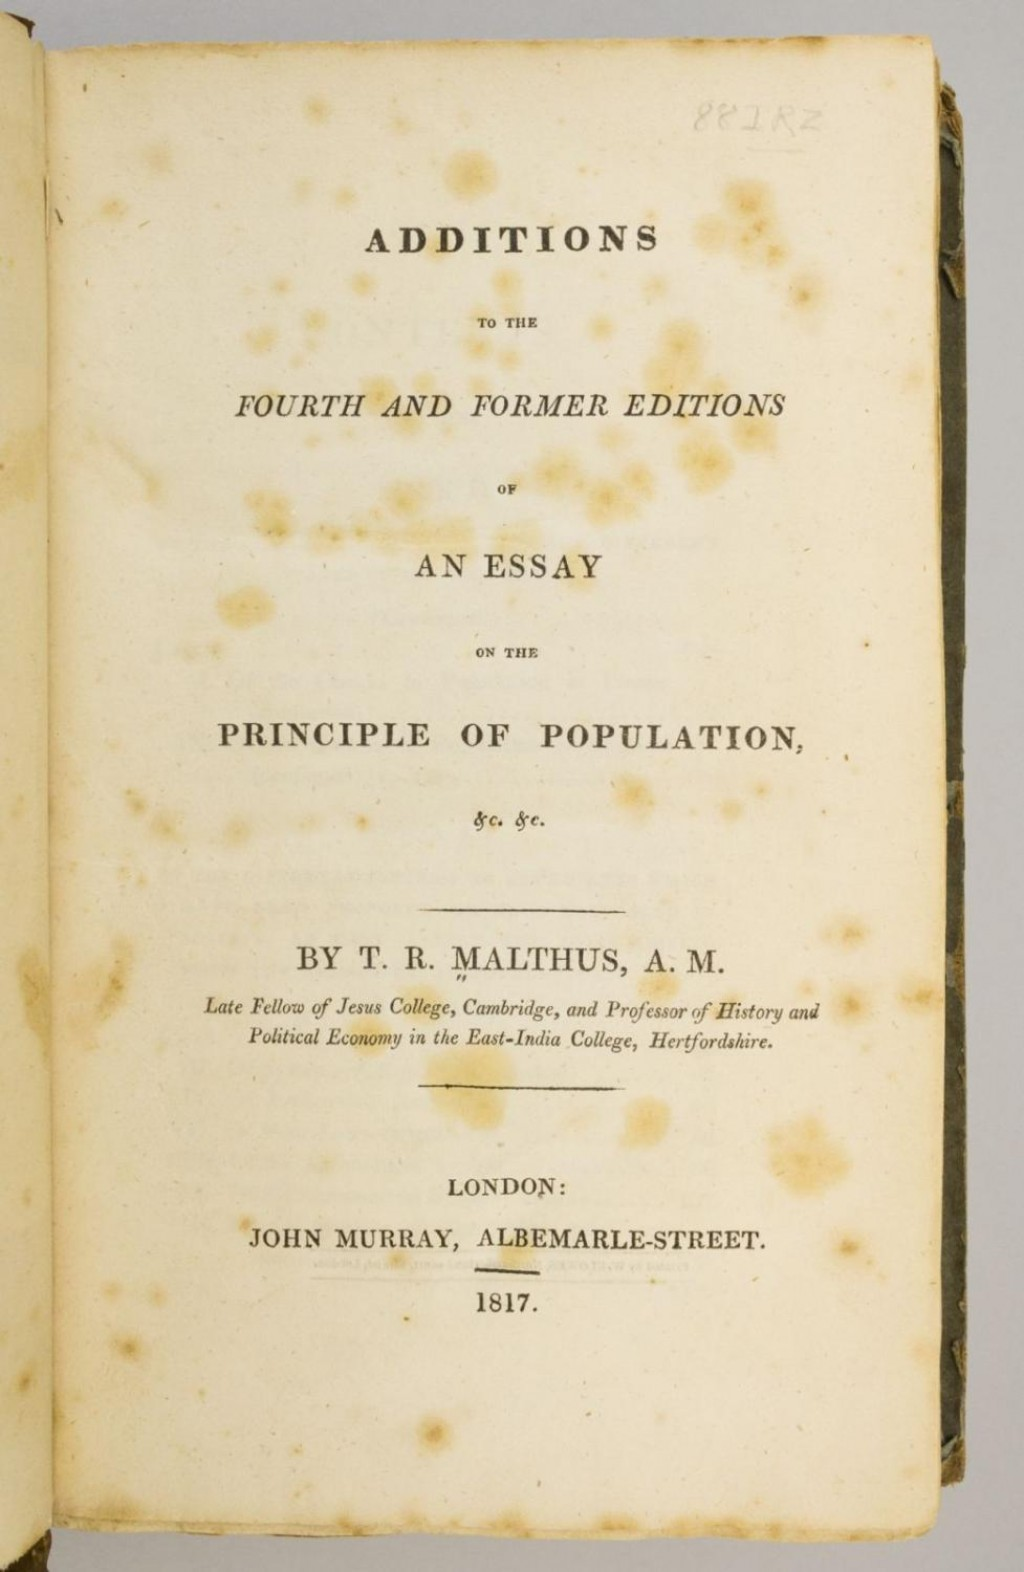 002 5337830061 2 An Essay On The Principle Of Population Fascinating By Thomas Malthus Pdf In Concluded Which Following Large